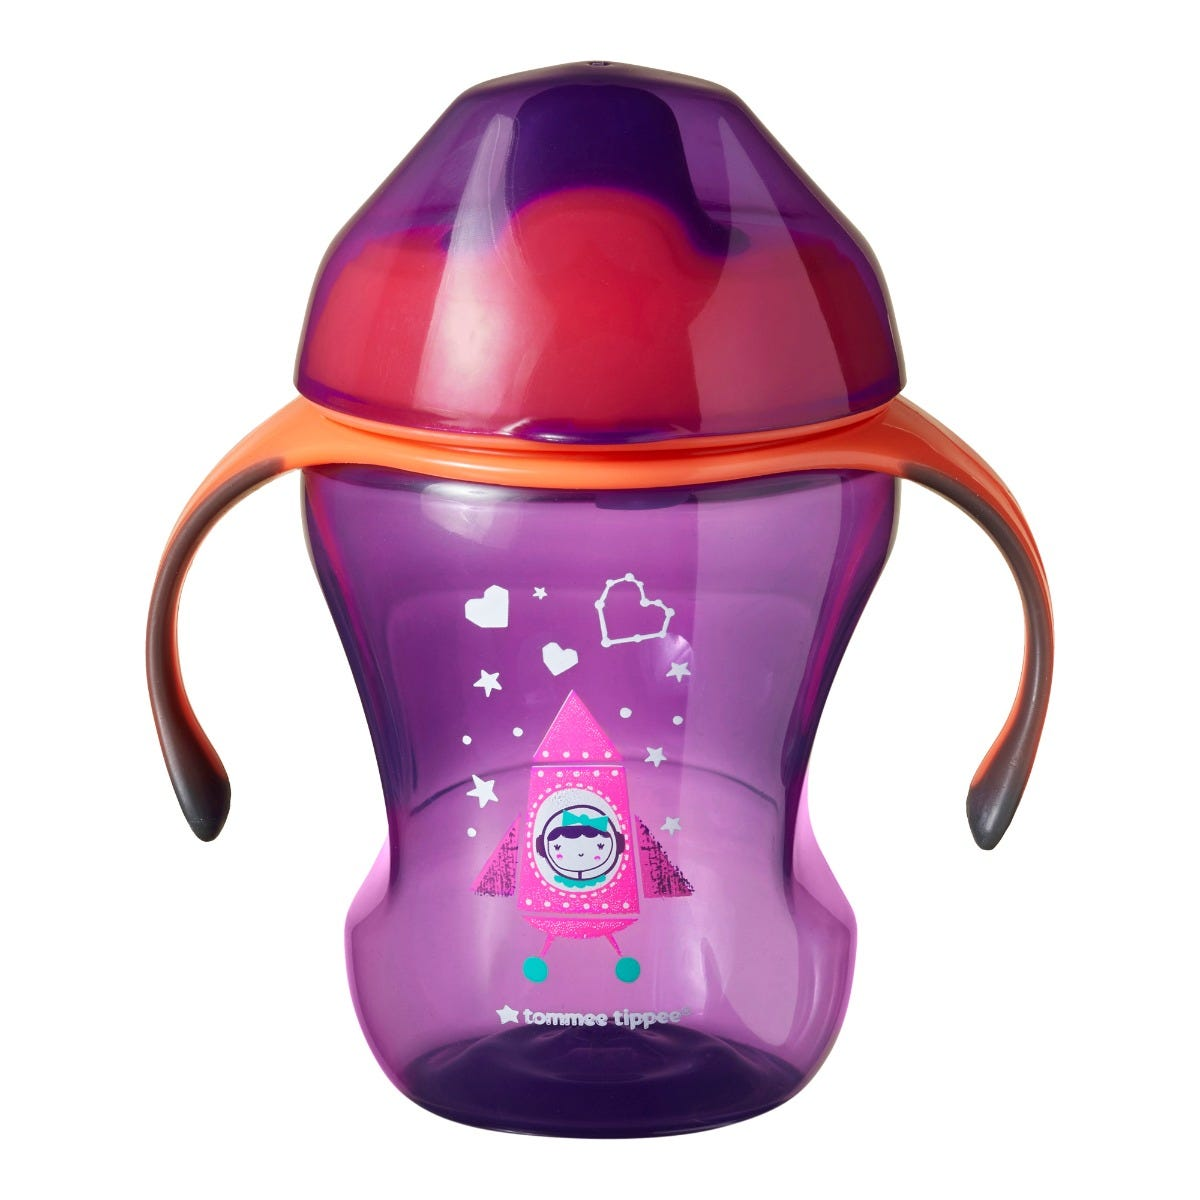 trainer-sippee-cup-in-purple-with-space-kid-design-and-orange-handles